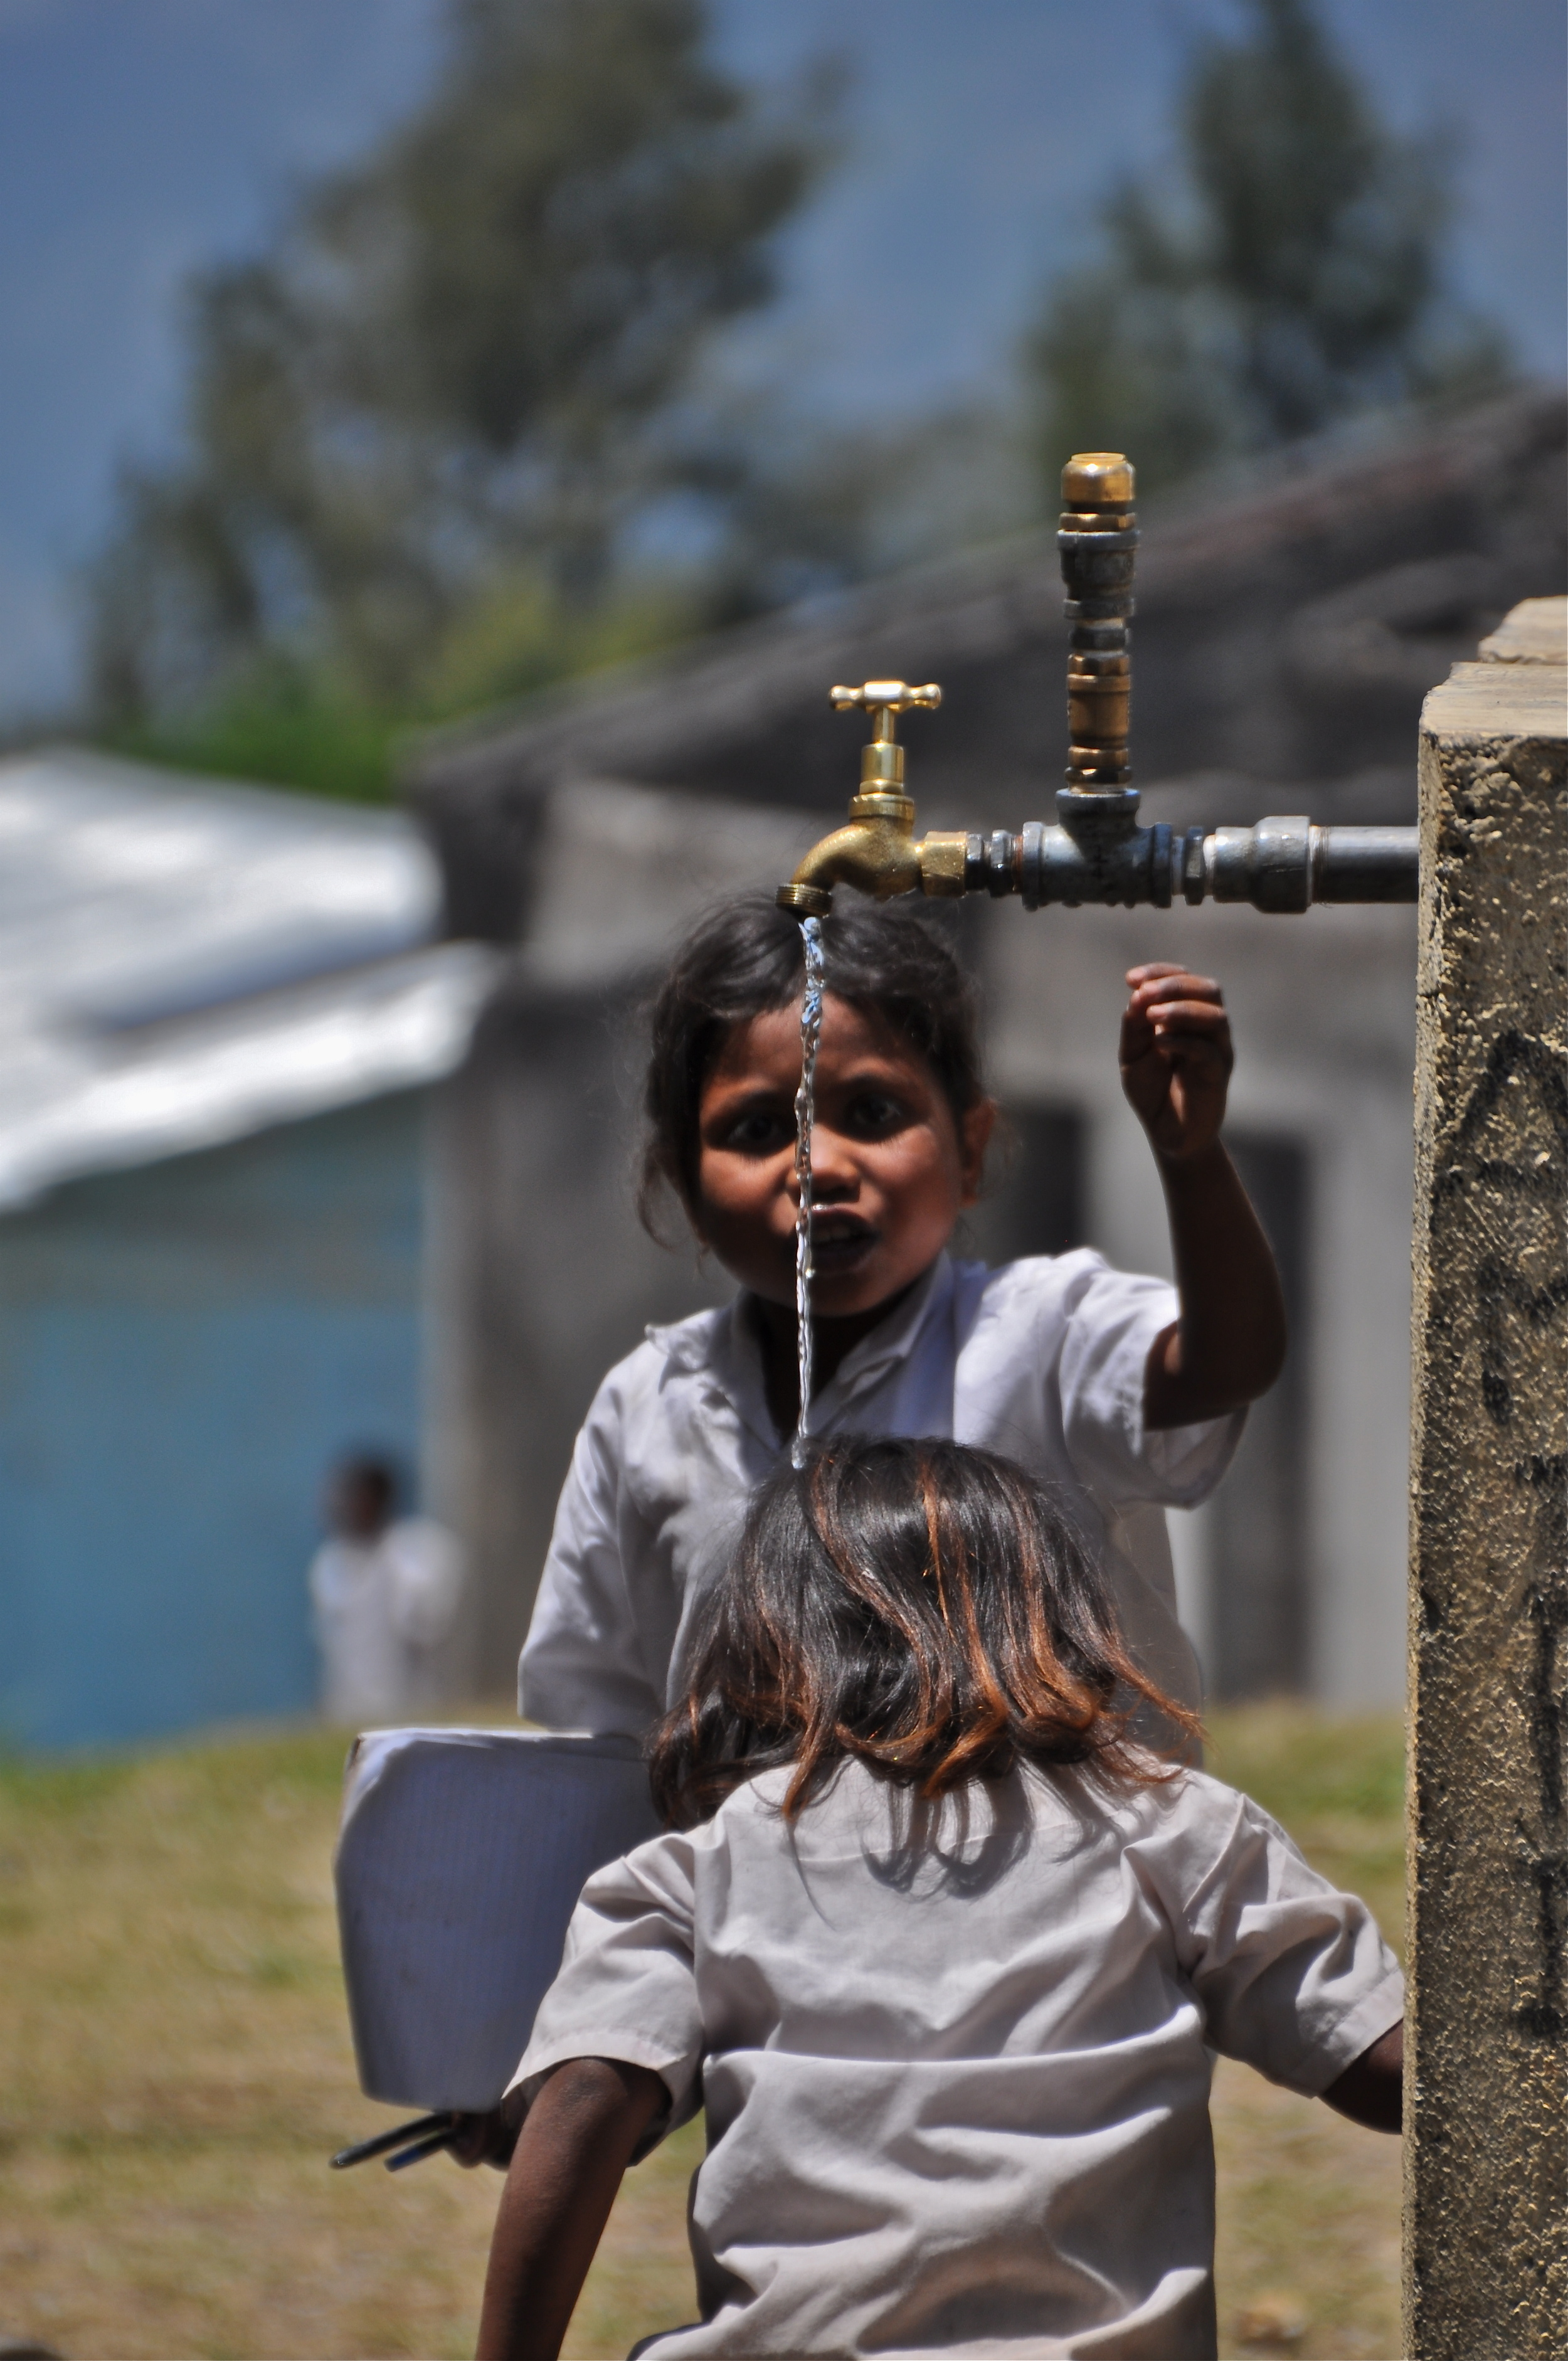 This tap was the only water supply for the entire school. On a good day it ran at a trickle leaving the school without drinking water, toilets or hand washing facilities